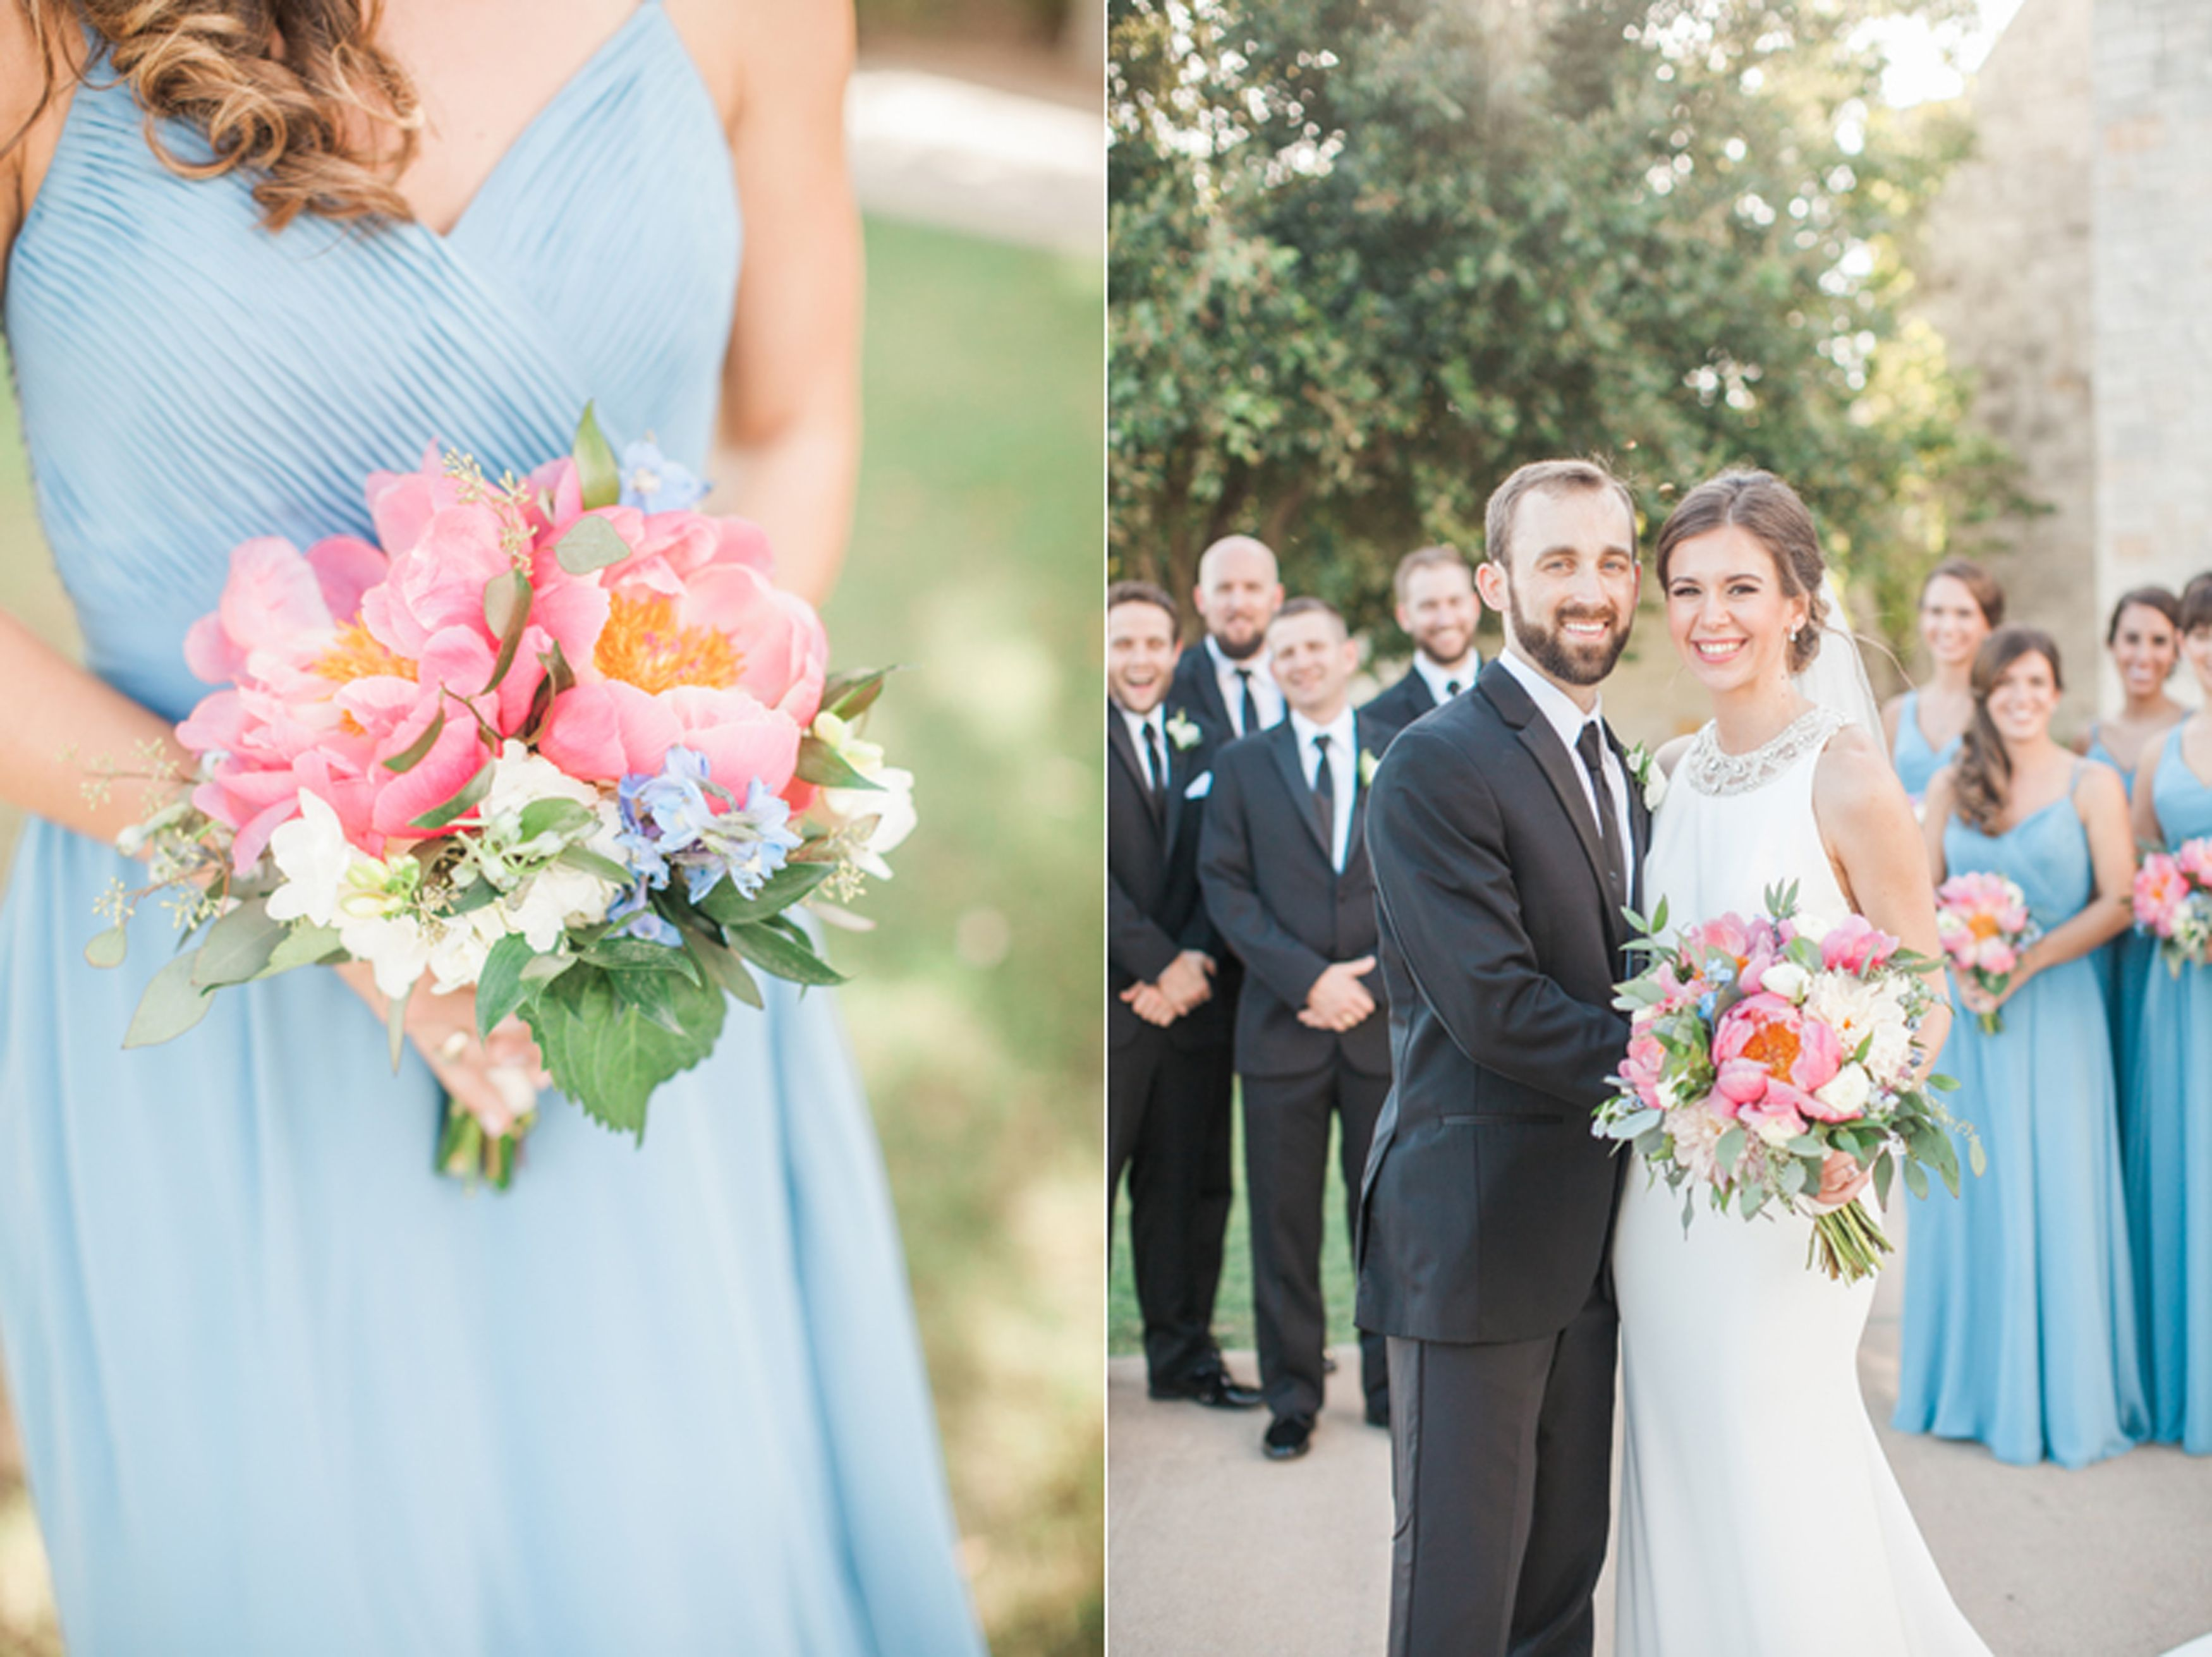 Sky blue bridesmaid dresses by nicole chatham photography ncp